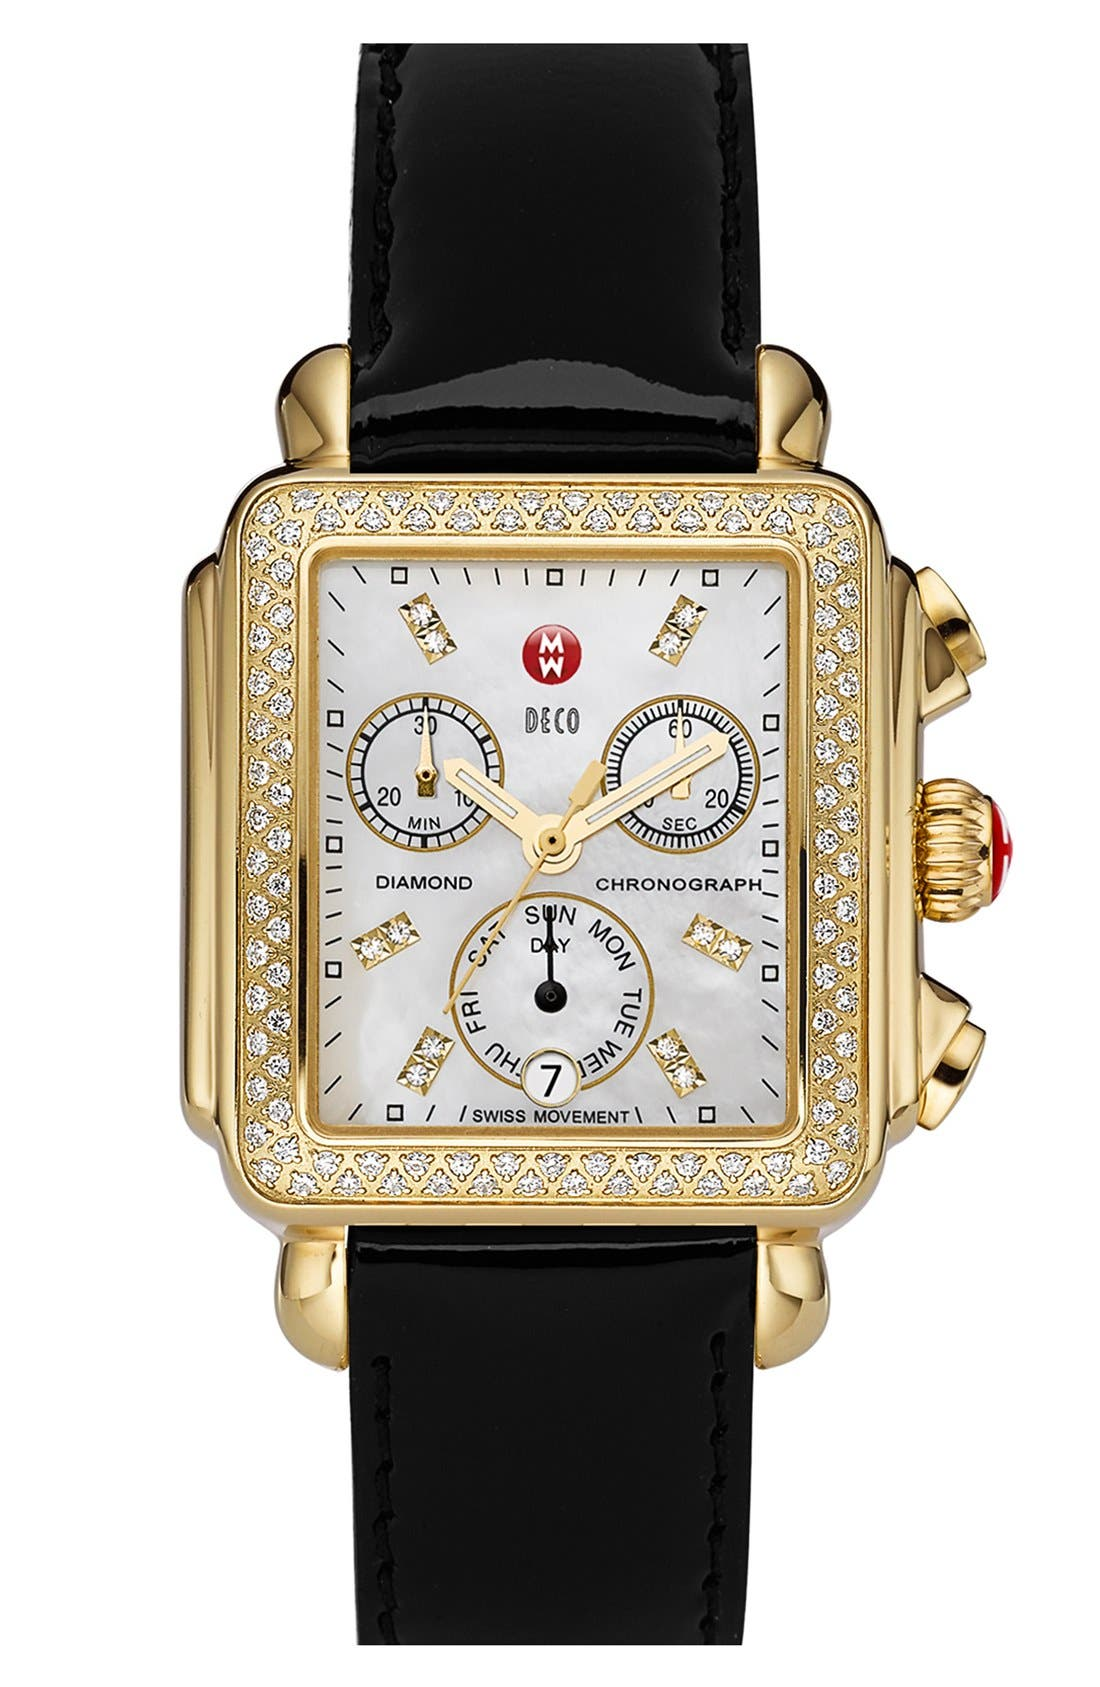 MICHELE, Deco Diamond Diamond Dial Gold Plated Watch Case, 33mm x 35mm, Alternate thumbnail 7, color, GOLD